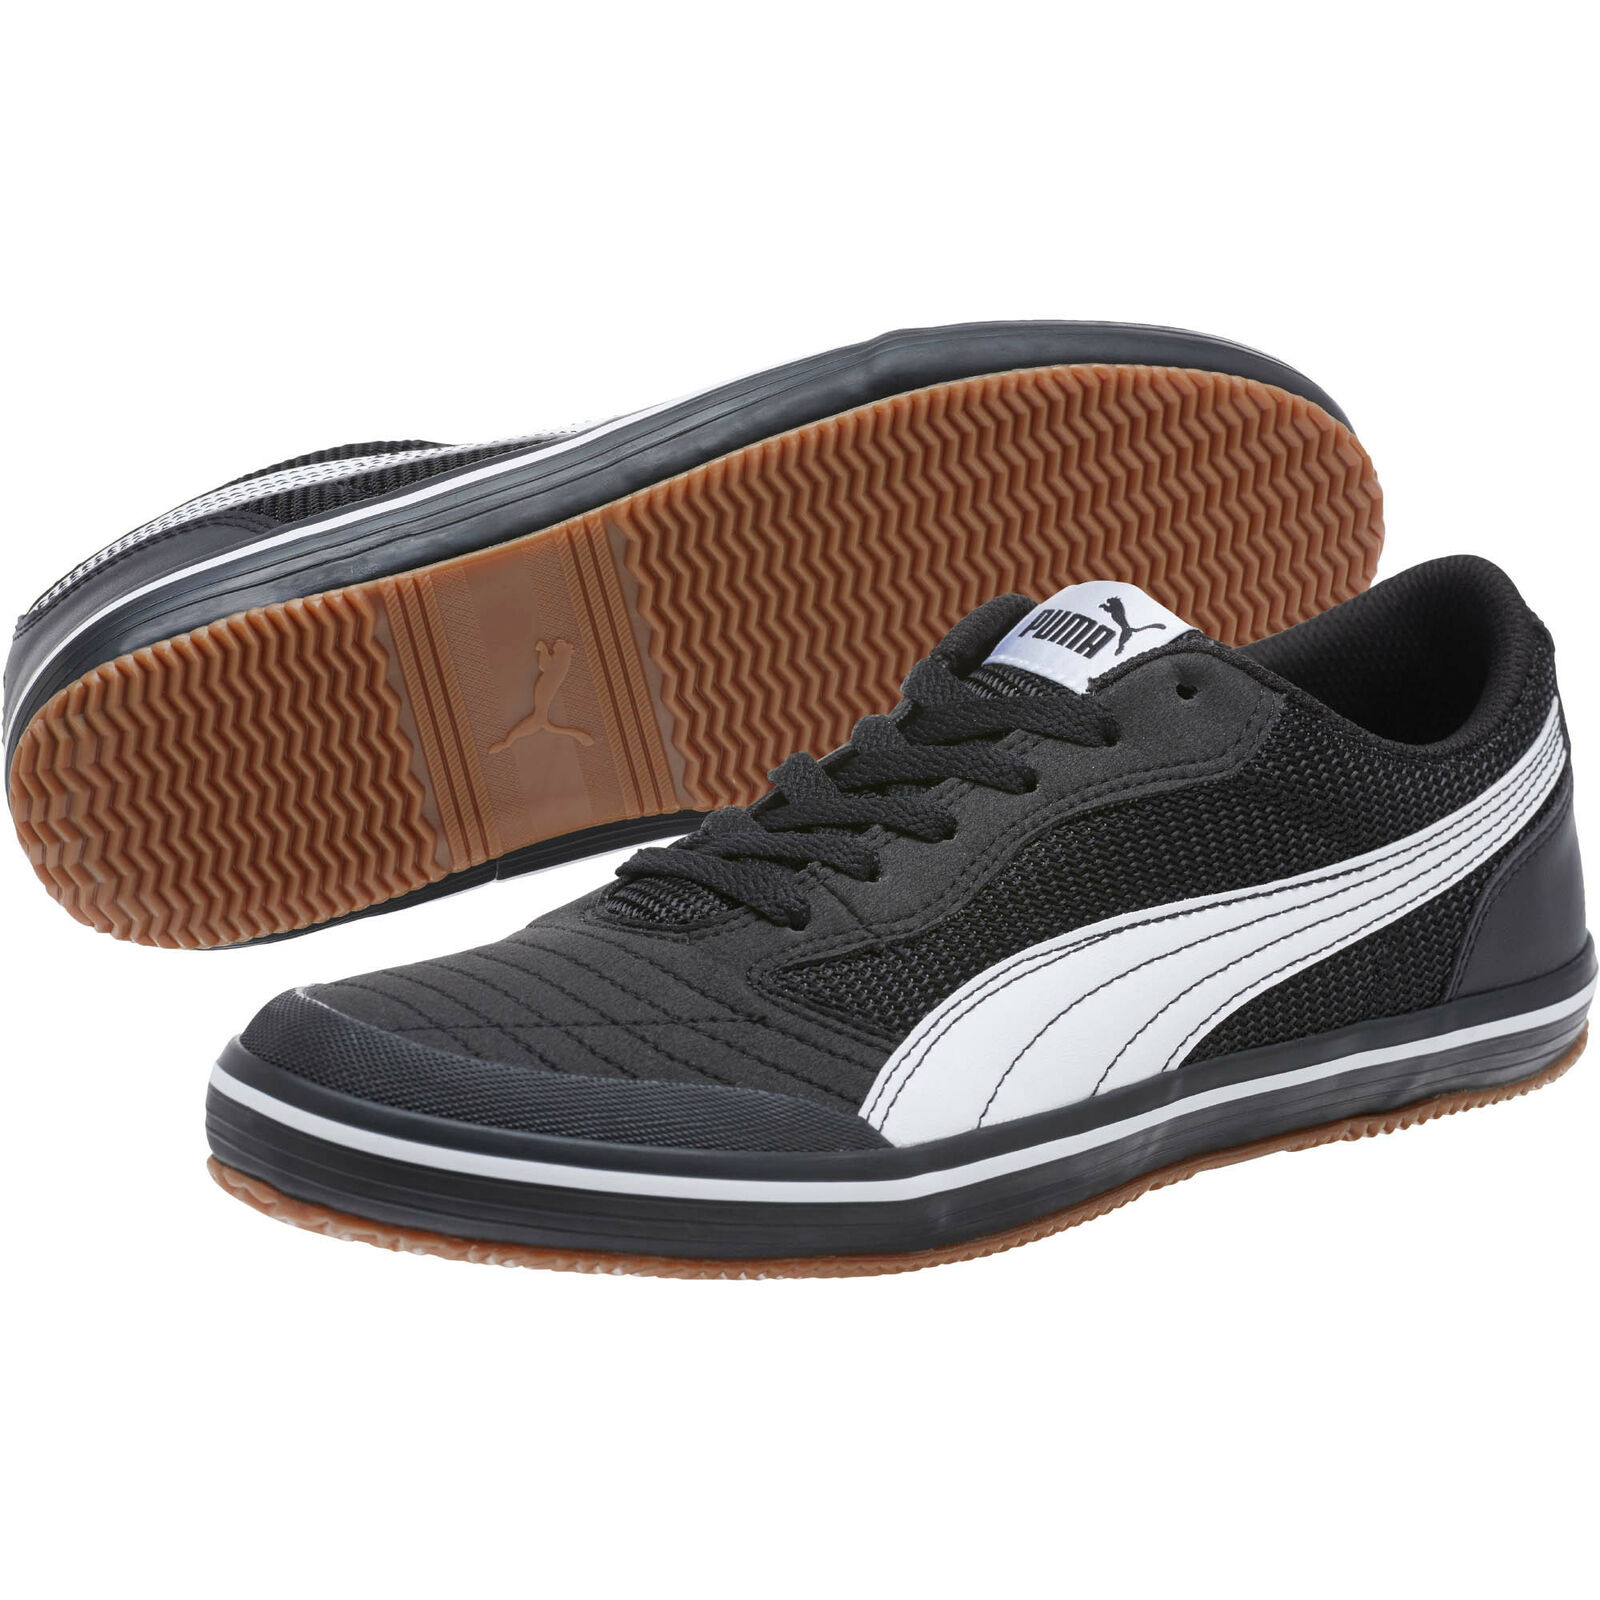 PUMA Astro Sala Sneakers Men Shoe Basics